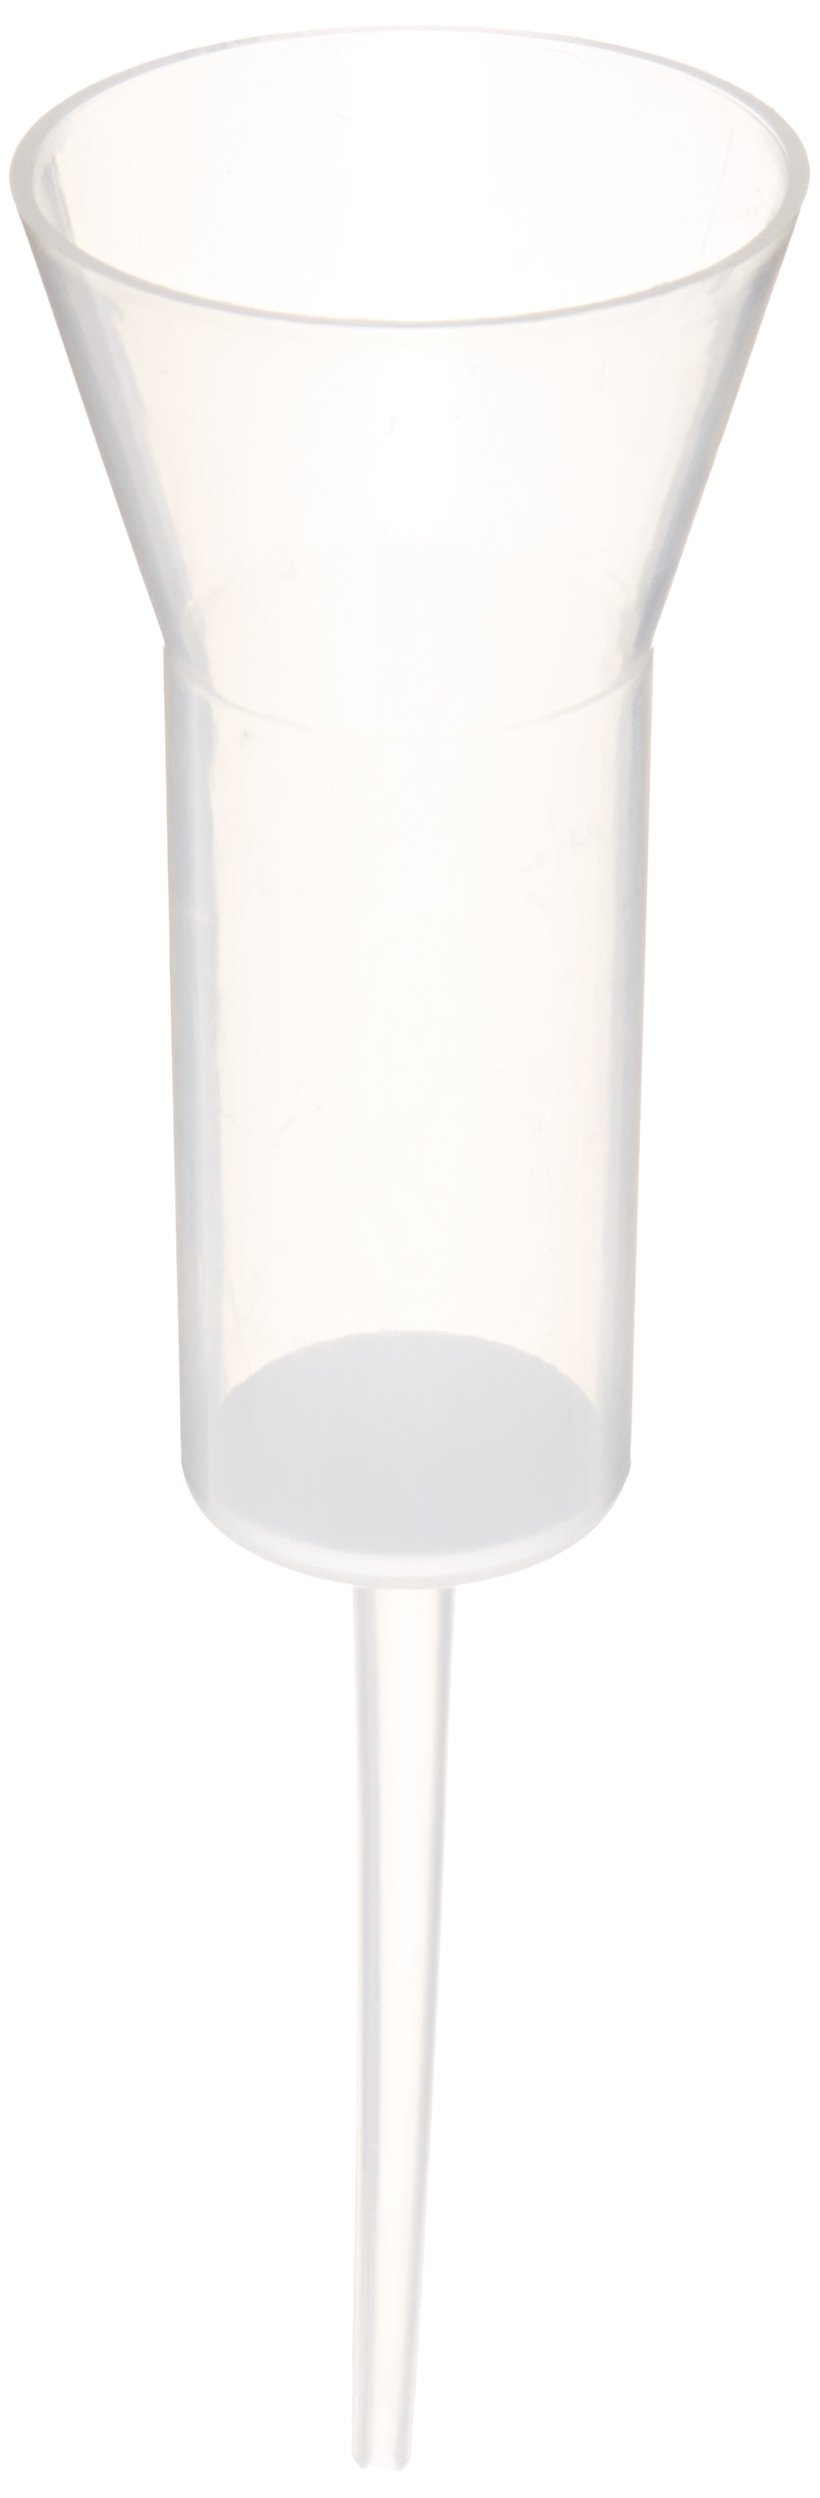 Chemglass OP-6602-C12 Polyethylene Frit Disposable Filter Funnel, Flared Top Style, 40mL Capacity (Pack of 24)